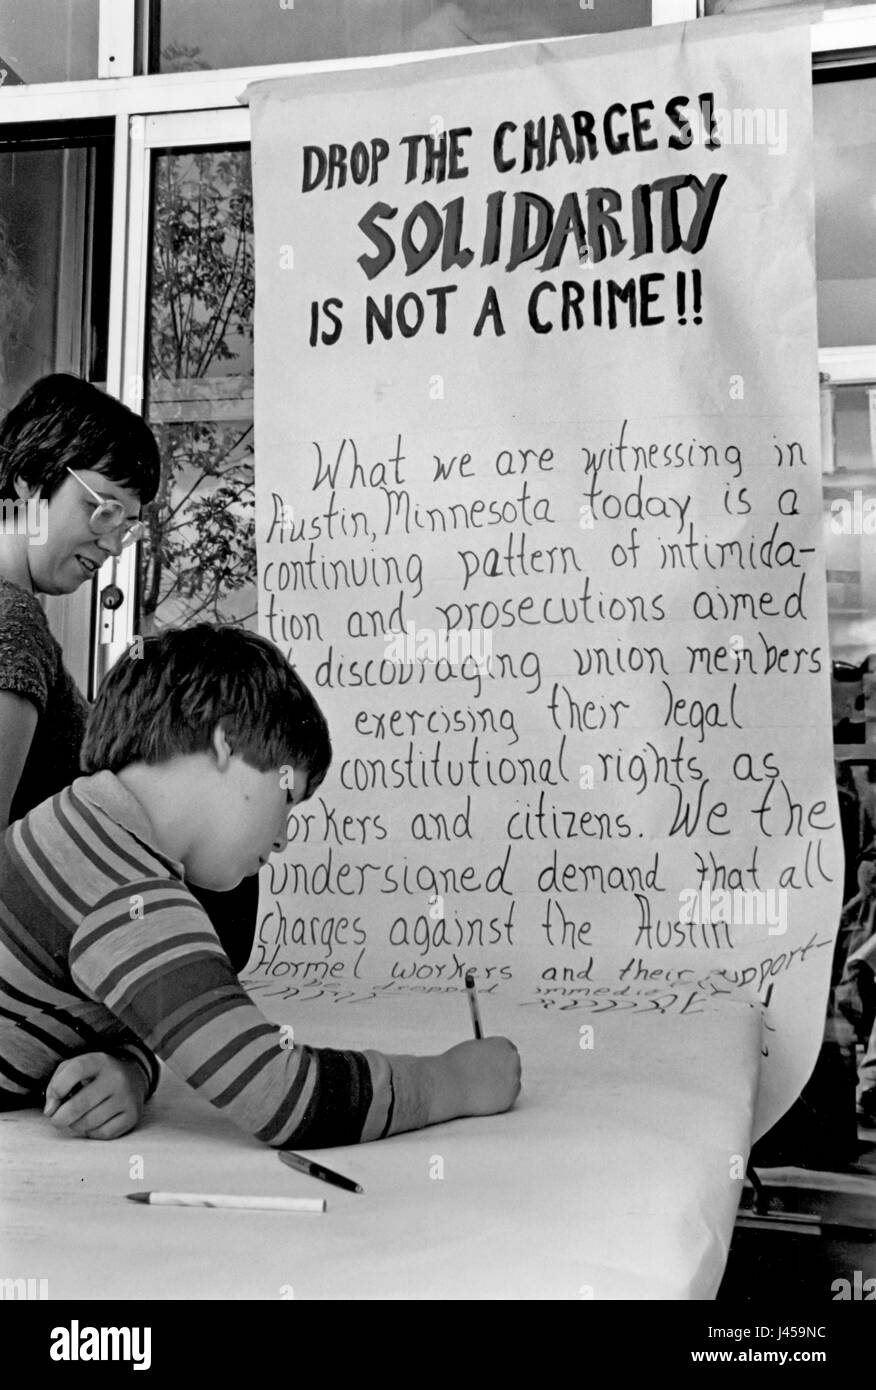 St. Paul, Minnesota - At a United Auto Workers union hall, supporters of striking Hormel meatpackers sign a petition - Stock Image